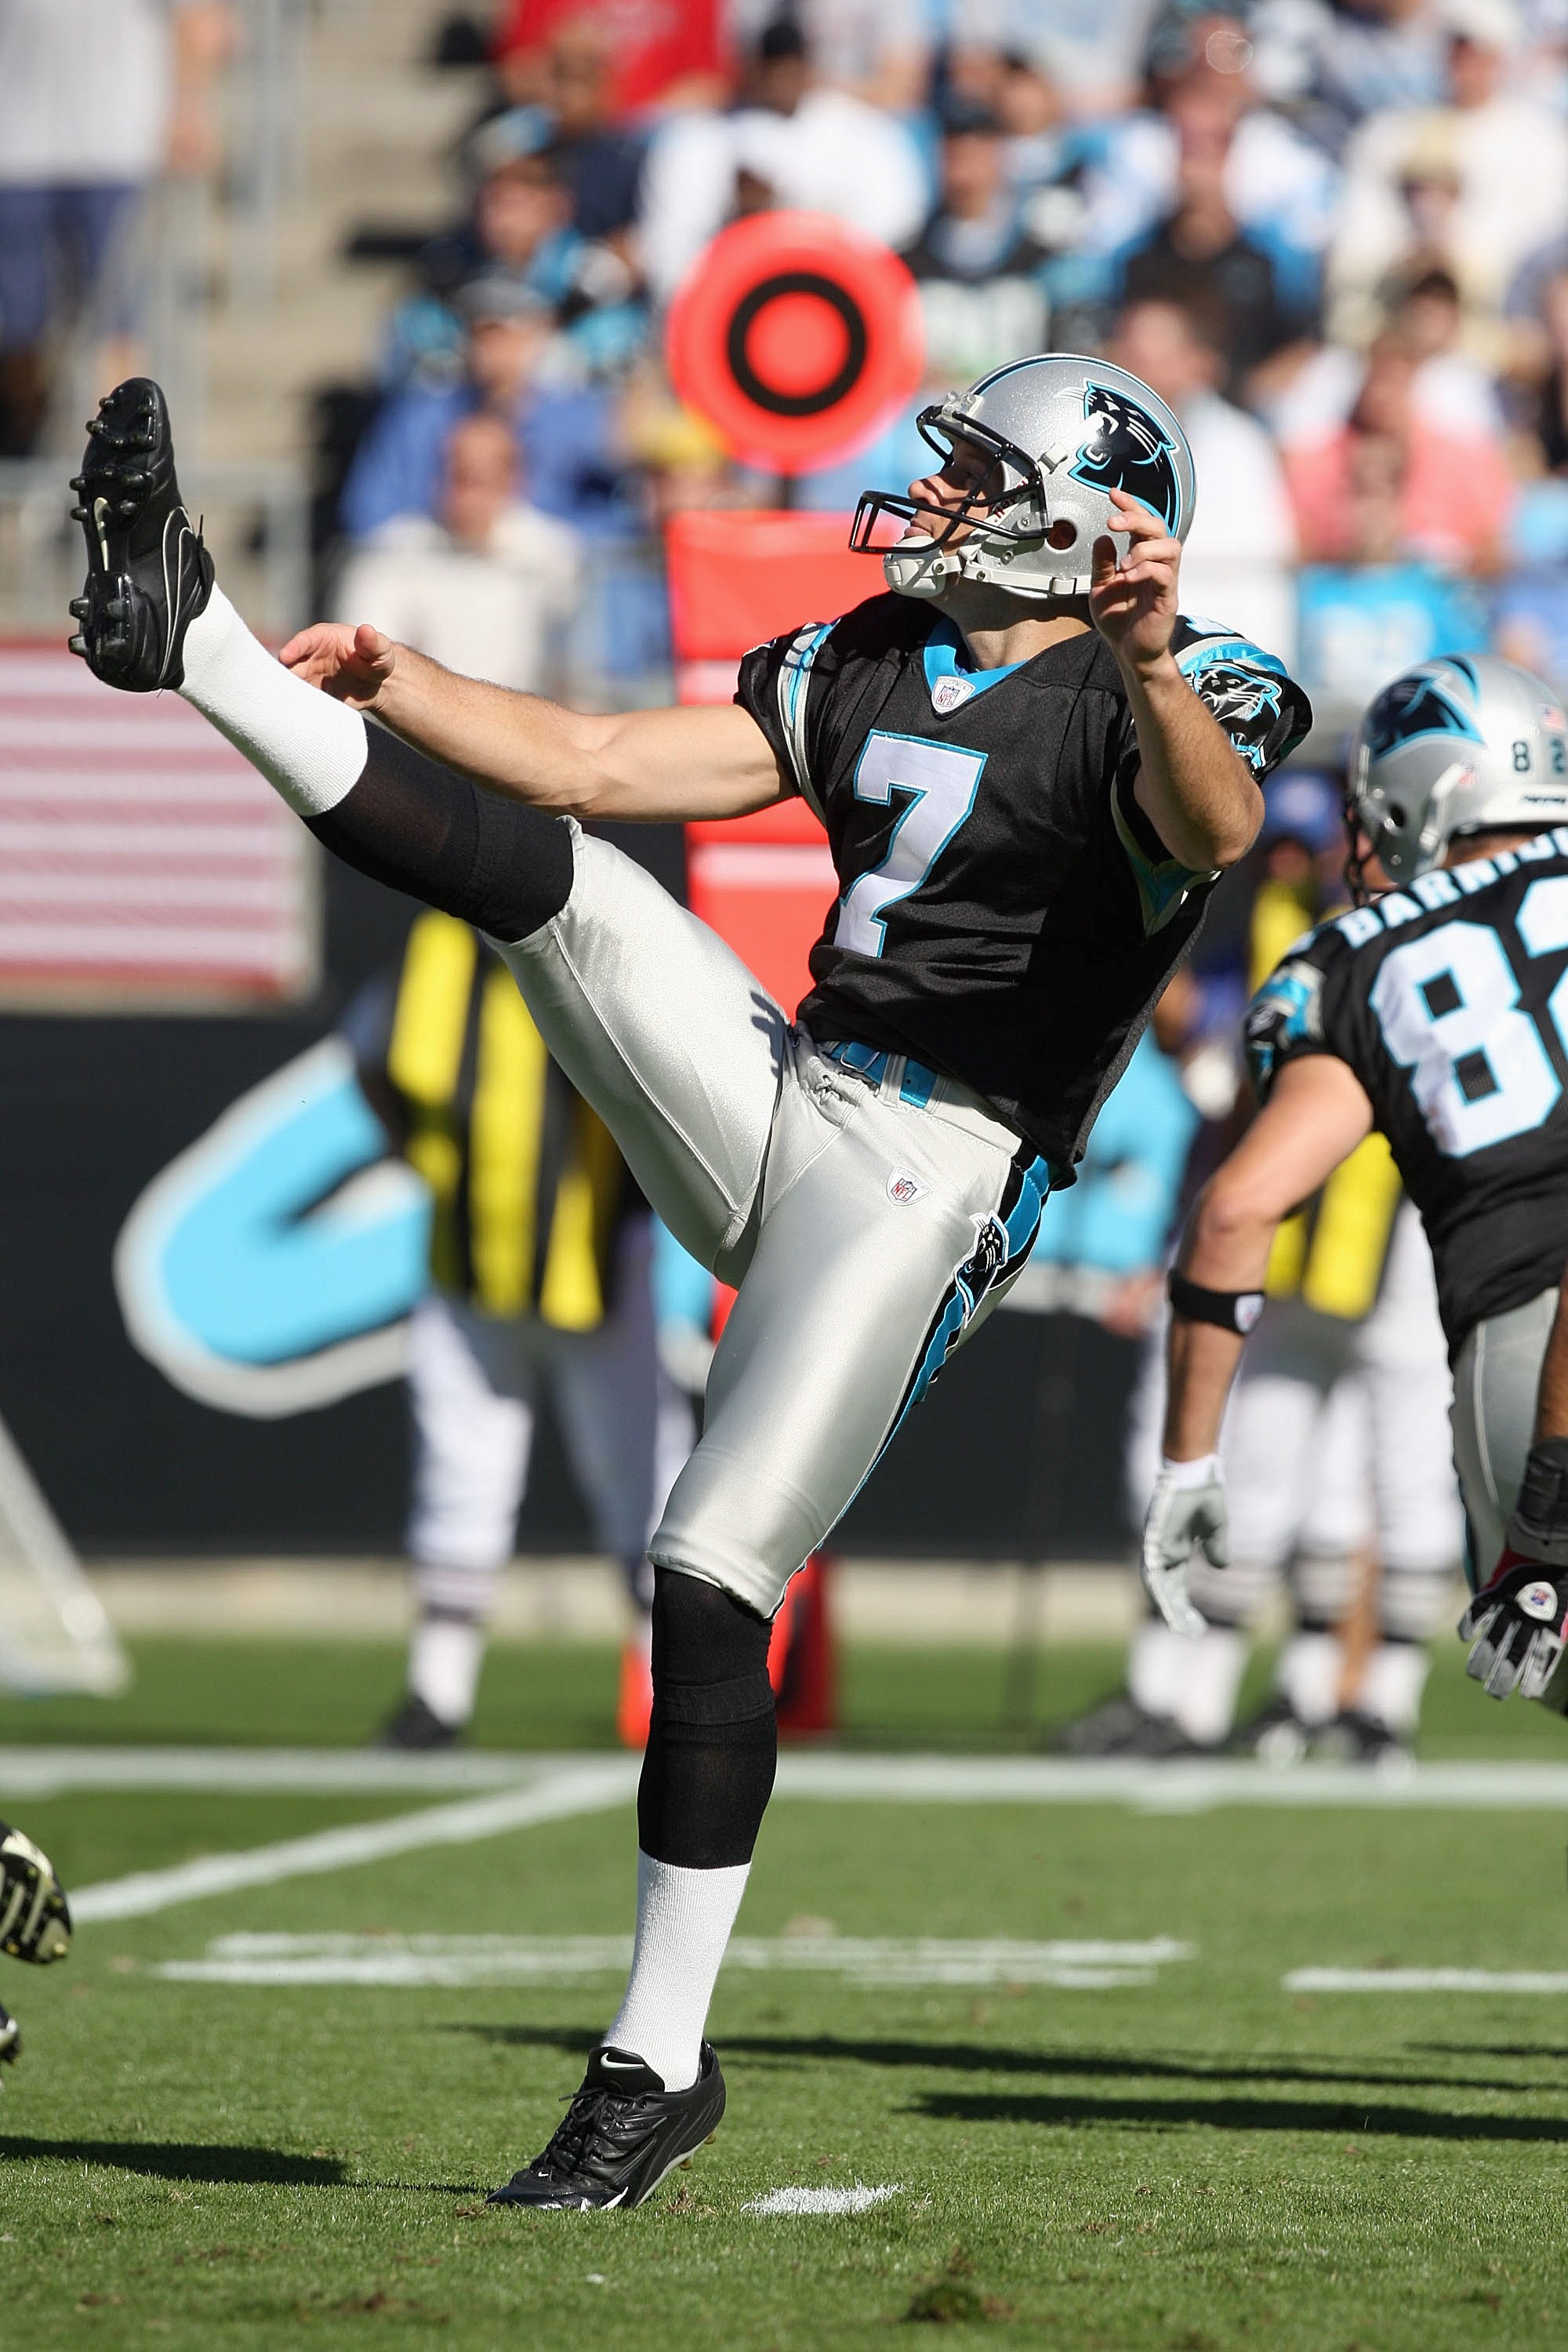 CHARLOTTE, NC - NOVEMBER 15:  Jason Baker #7 of the Carolina Panthers punts the ball during the game against the Atlanta Falcons at Bank of America Stadium on November 15, 2009 in Charlotte, North Carolina.  (Photo by Streeter Lecka/Getty Images)